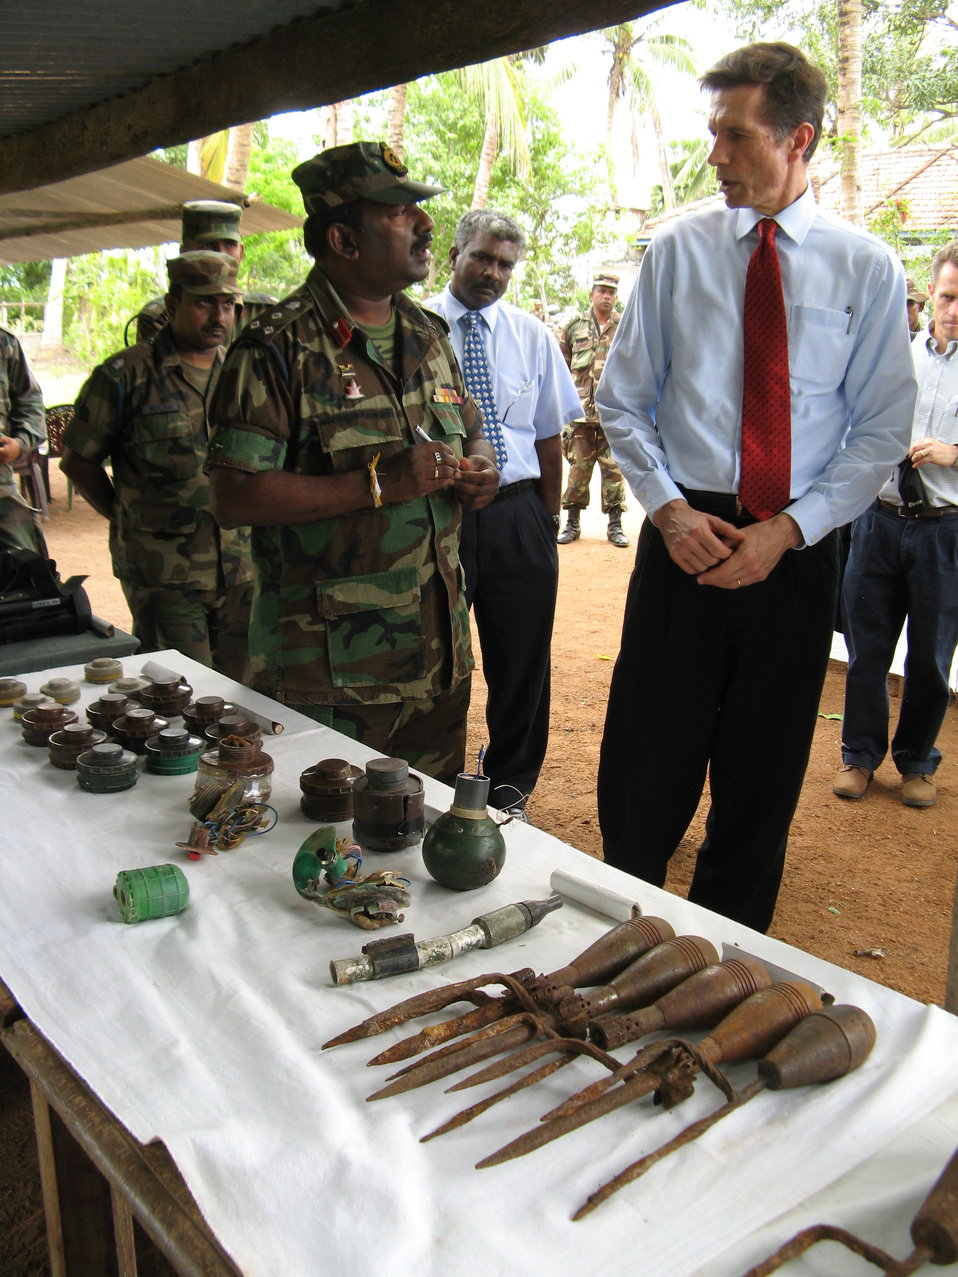 Assistant Secretary Blake Speaks With Sri Lankan Soldiers